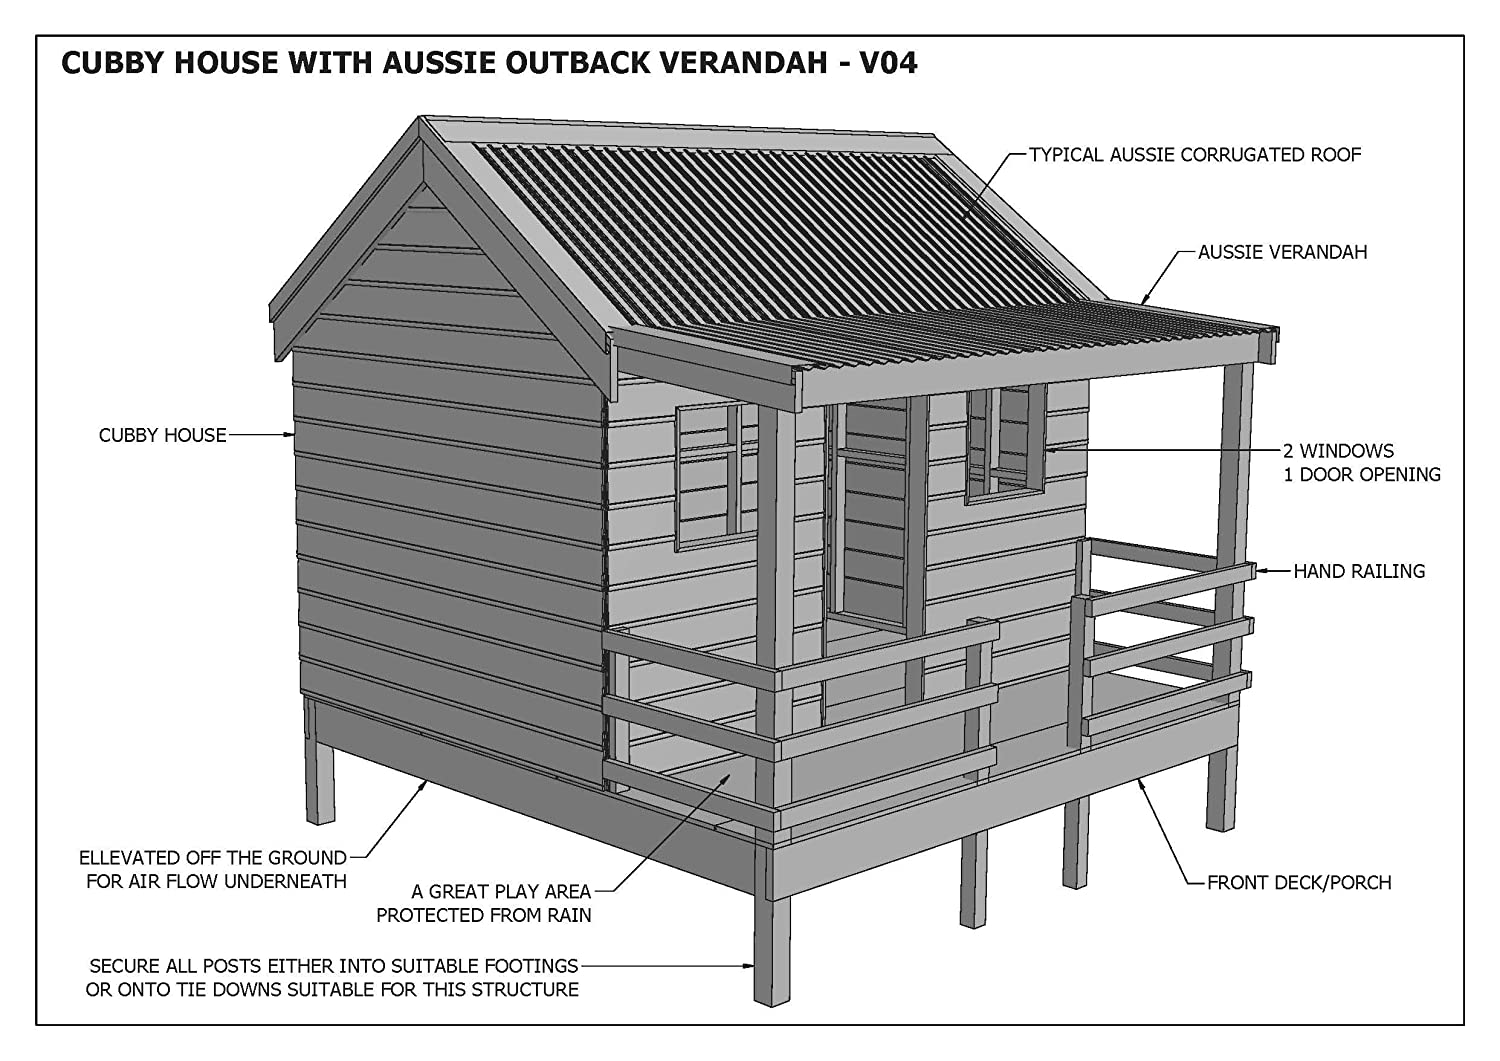 Amazoncom CUBBY HOUSE PLAY HOUSE Great Aussie Outback - Cubby house